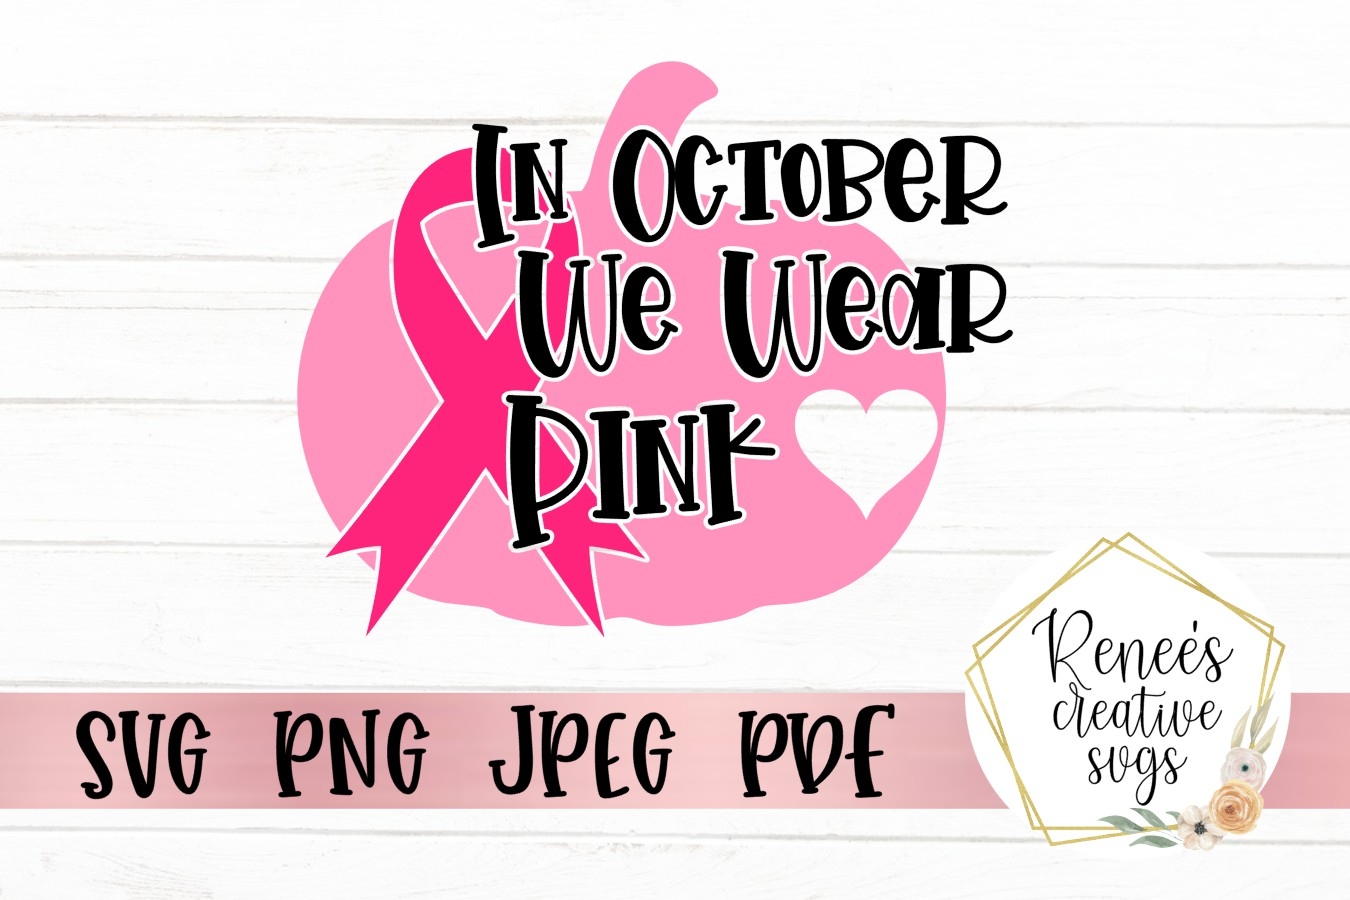 In October We Wear Pink|Breast cancer awareness SVG Cut File example image 2